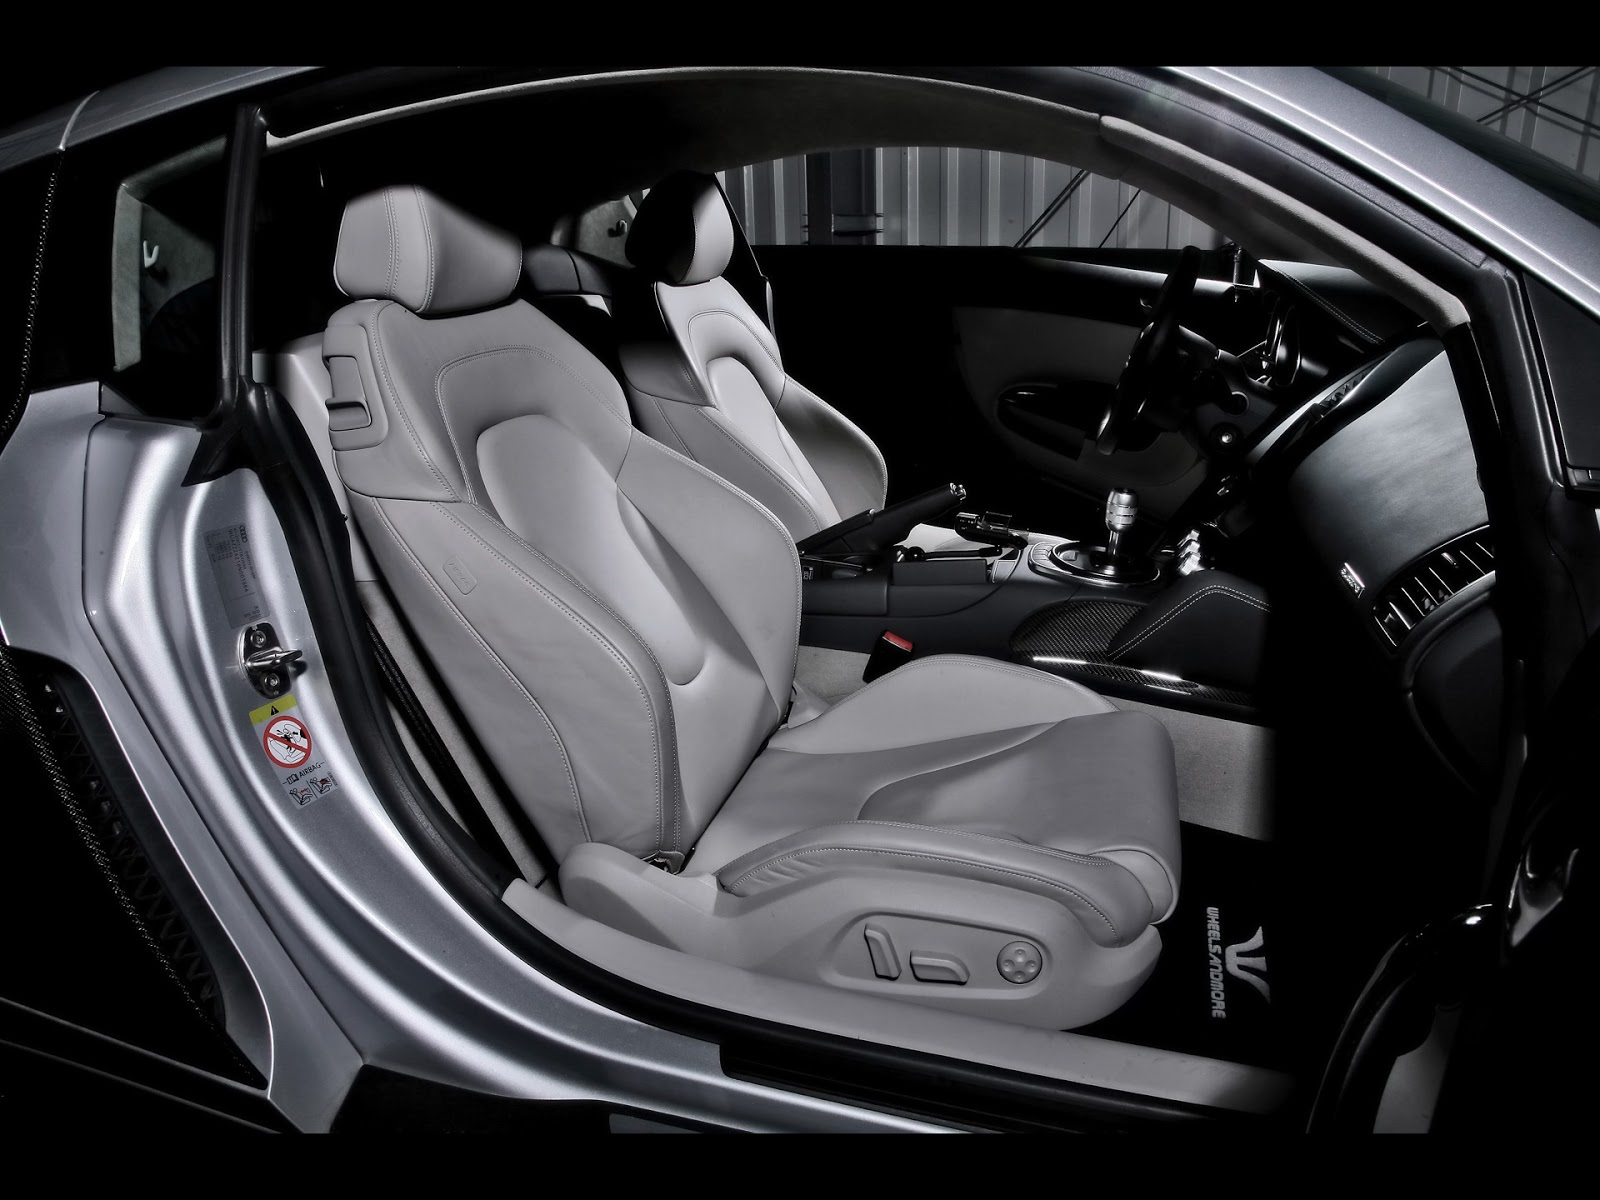 Audi R8 Interior Wallpapers